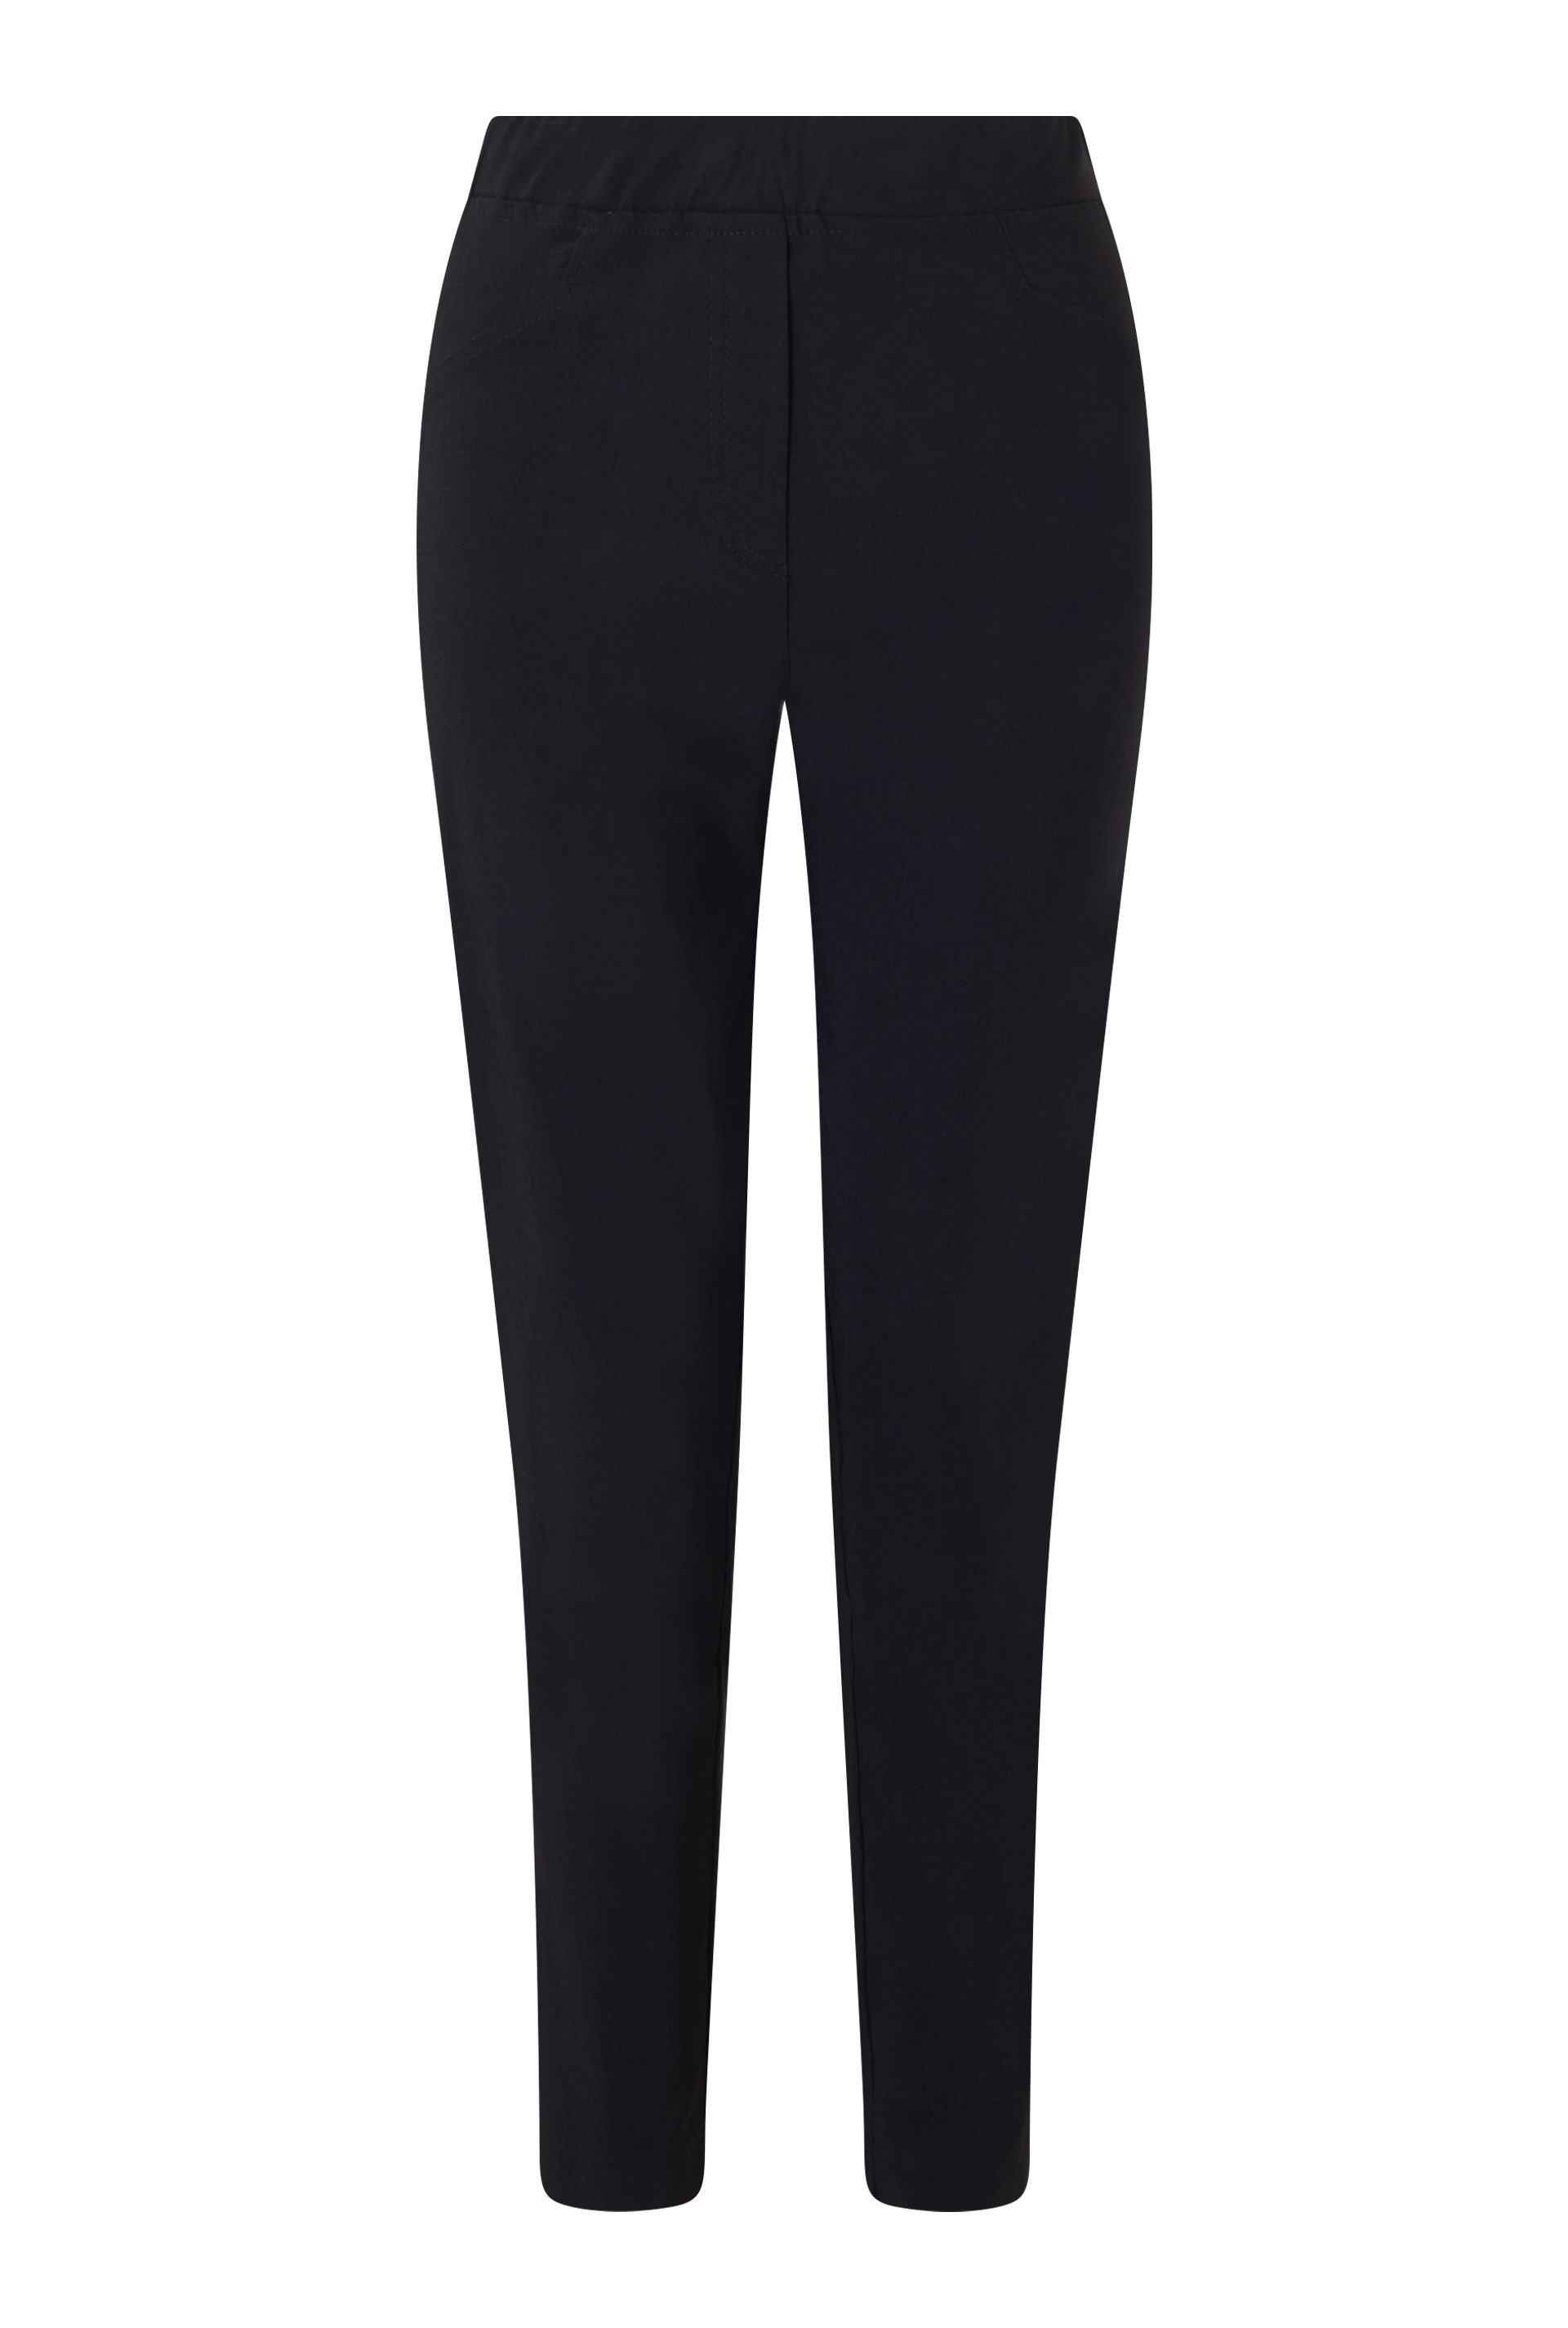 James Lakeland Long Length Pull On Trousers, Black